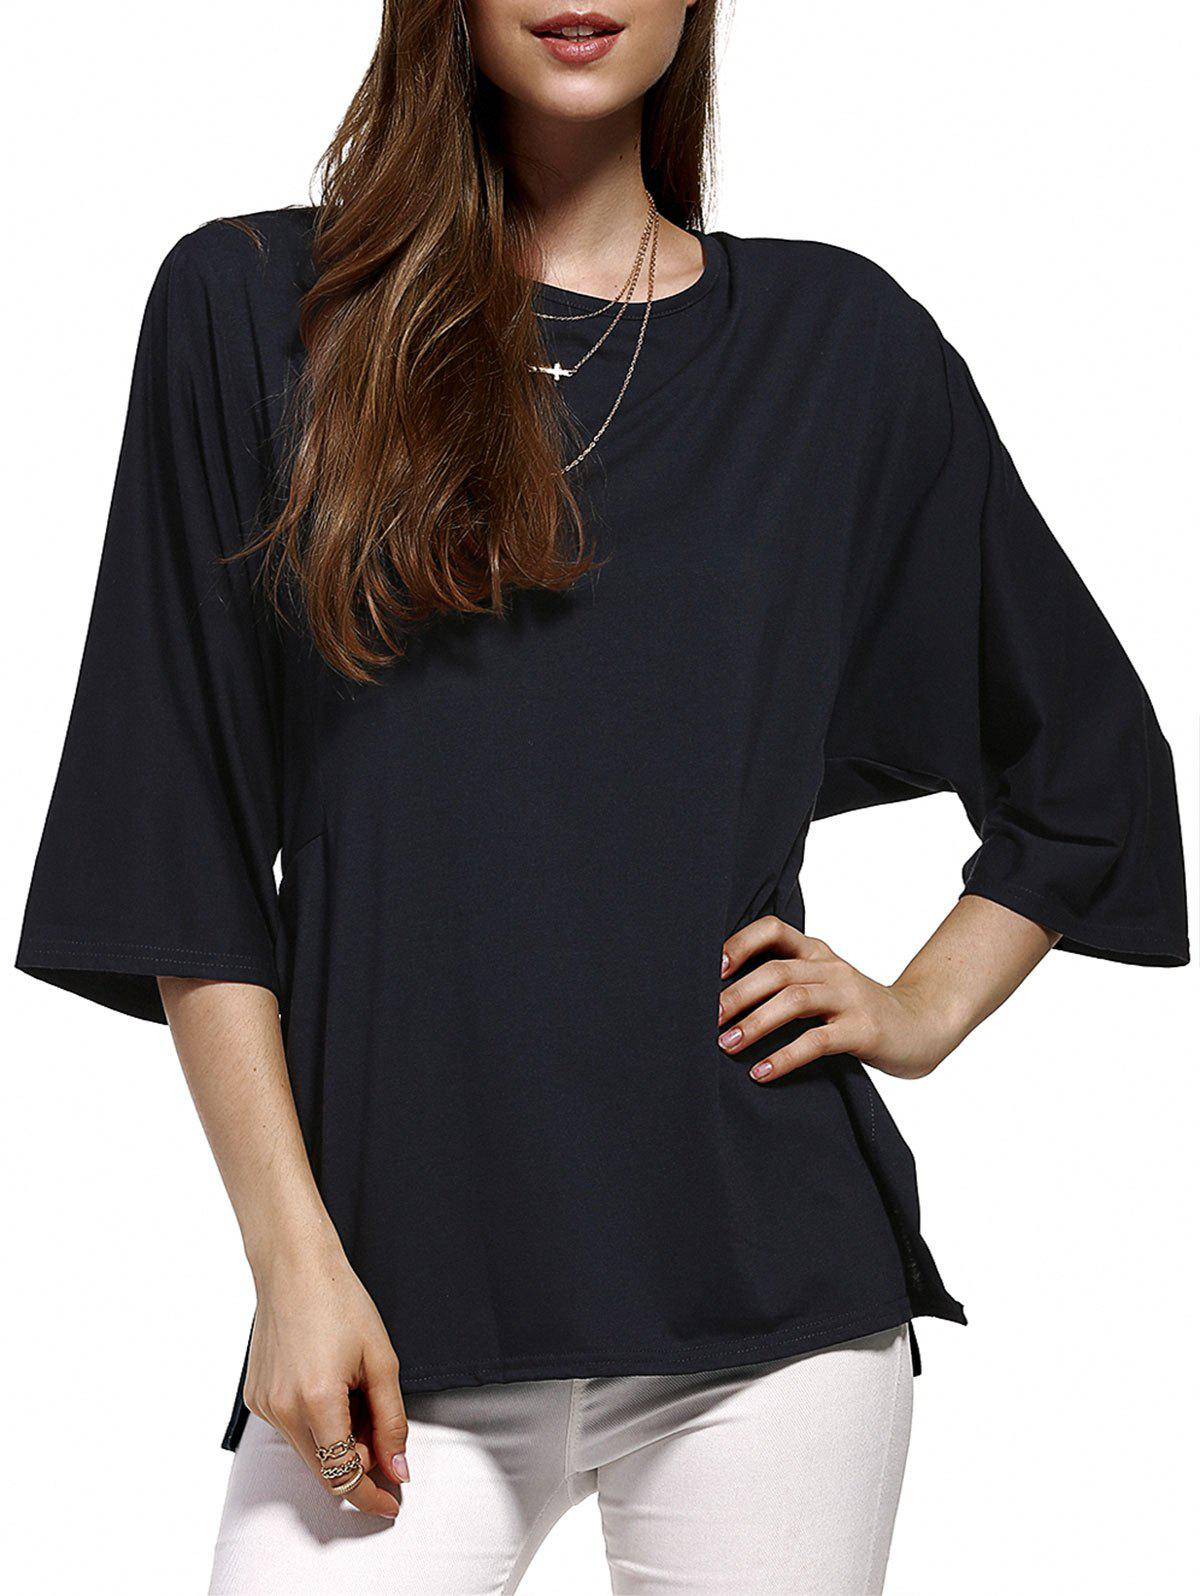 Chic Plus Size Pure Color Batwing Sleeve Women's Blouse chic plus size plunging neck batwing sleeve pure color blouse for women